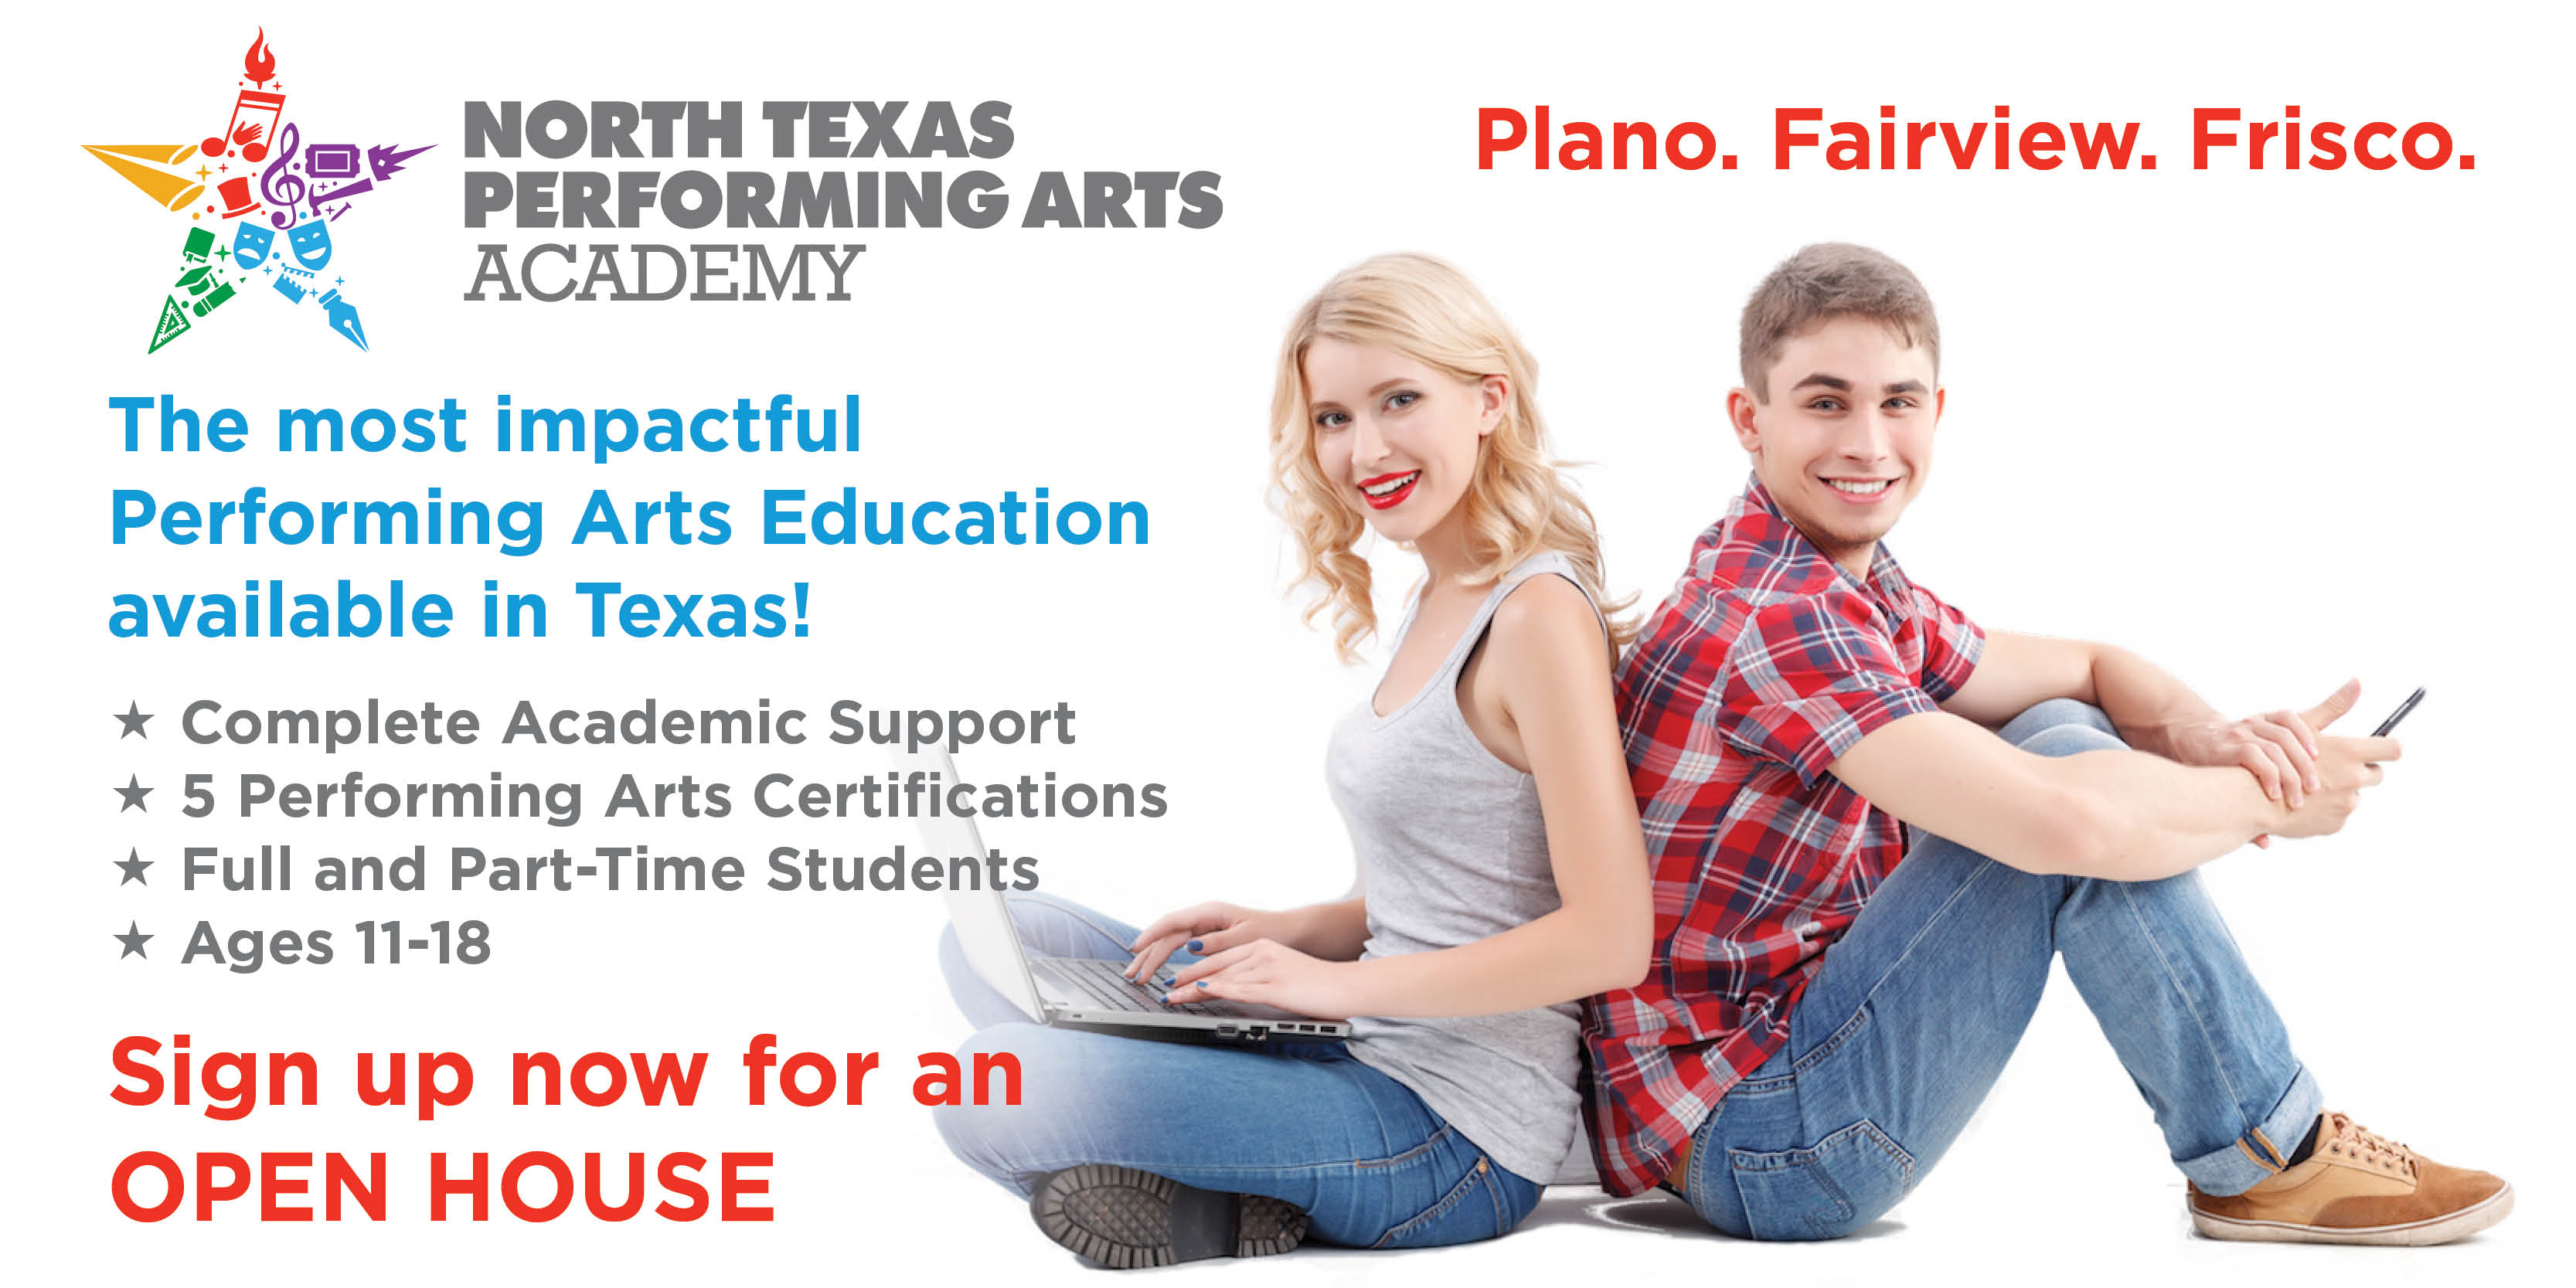 ntpa academy - the most impactful performing arts education in North Texas!